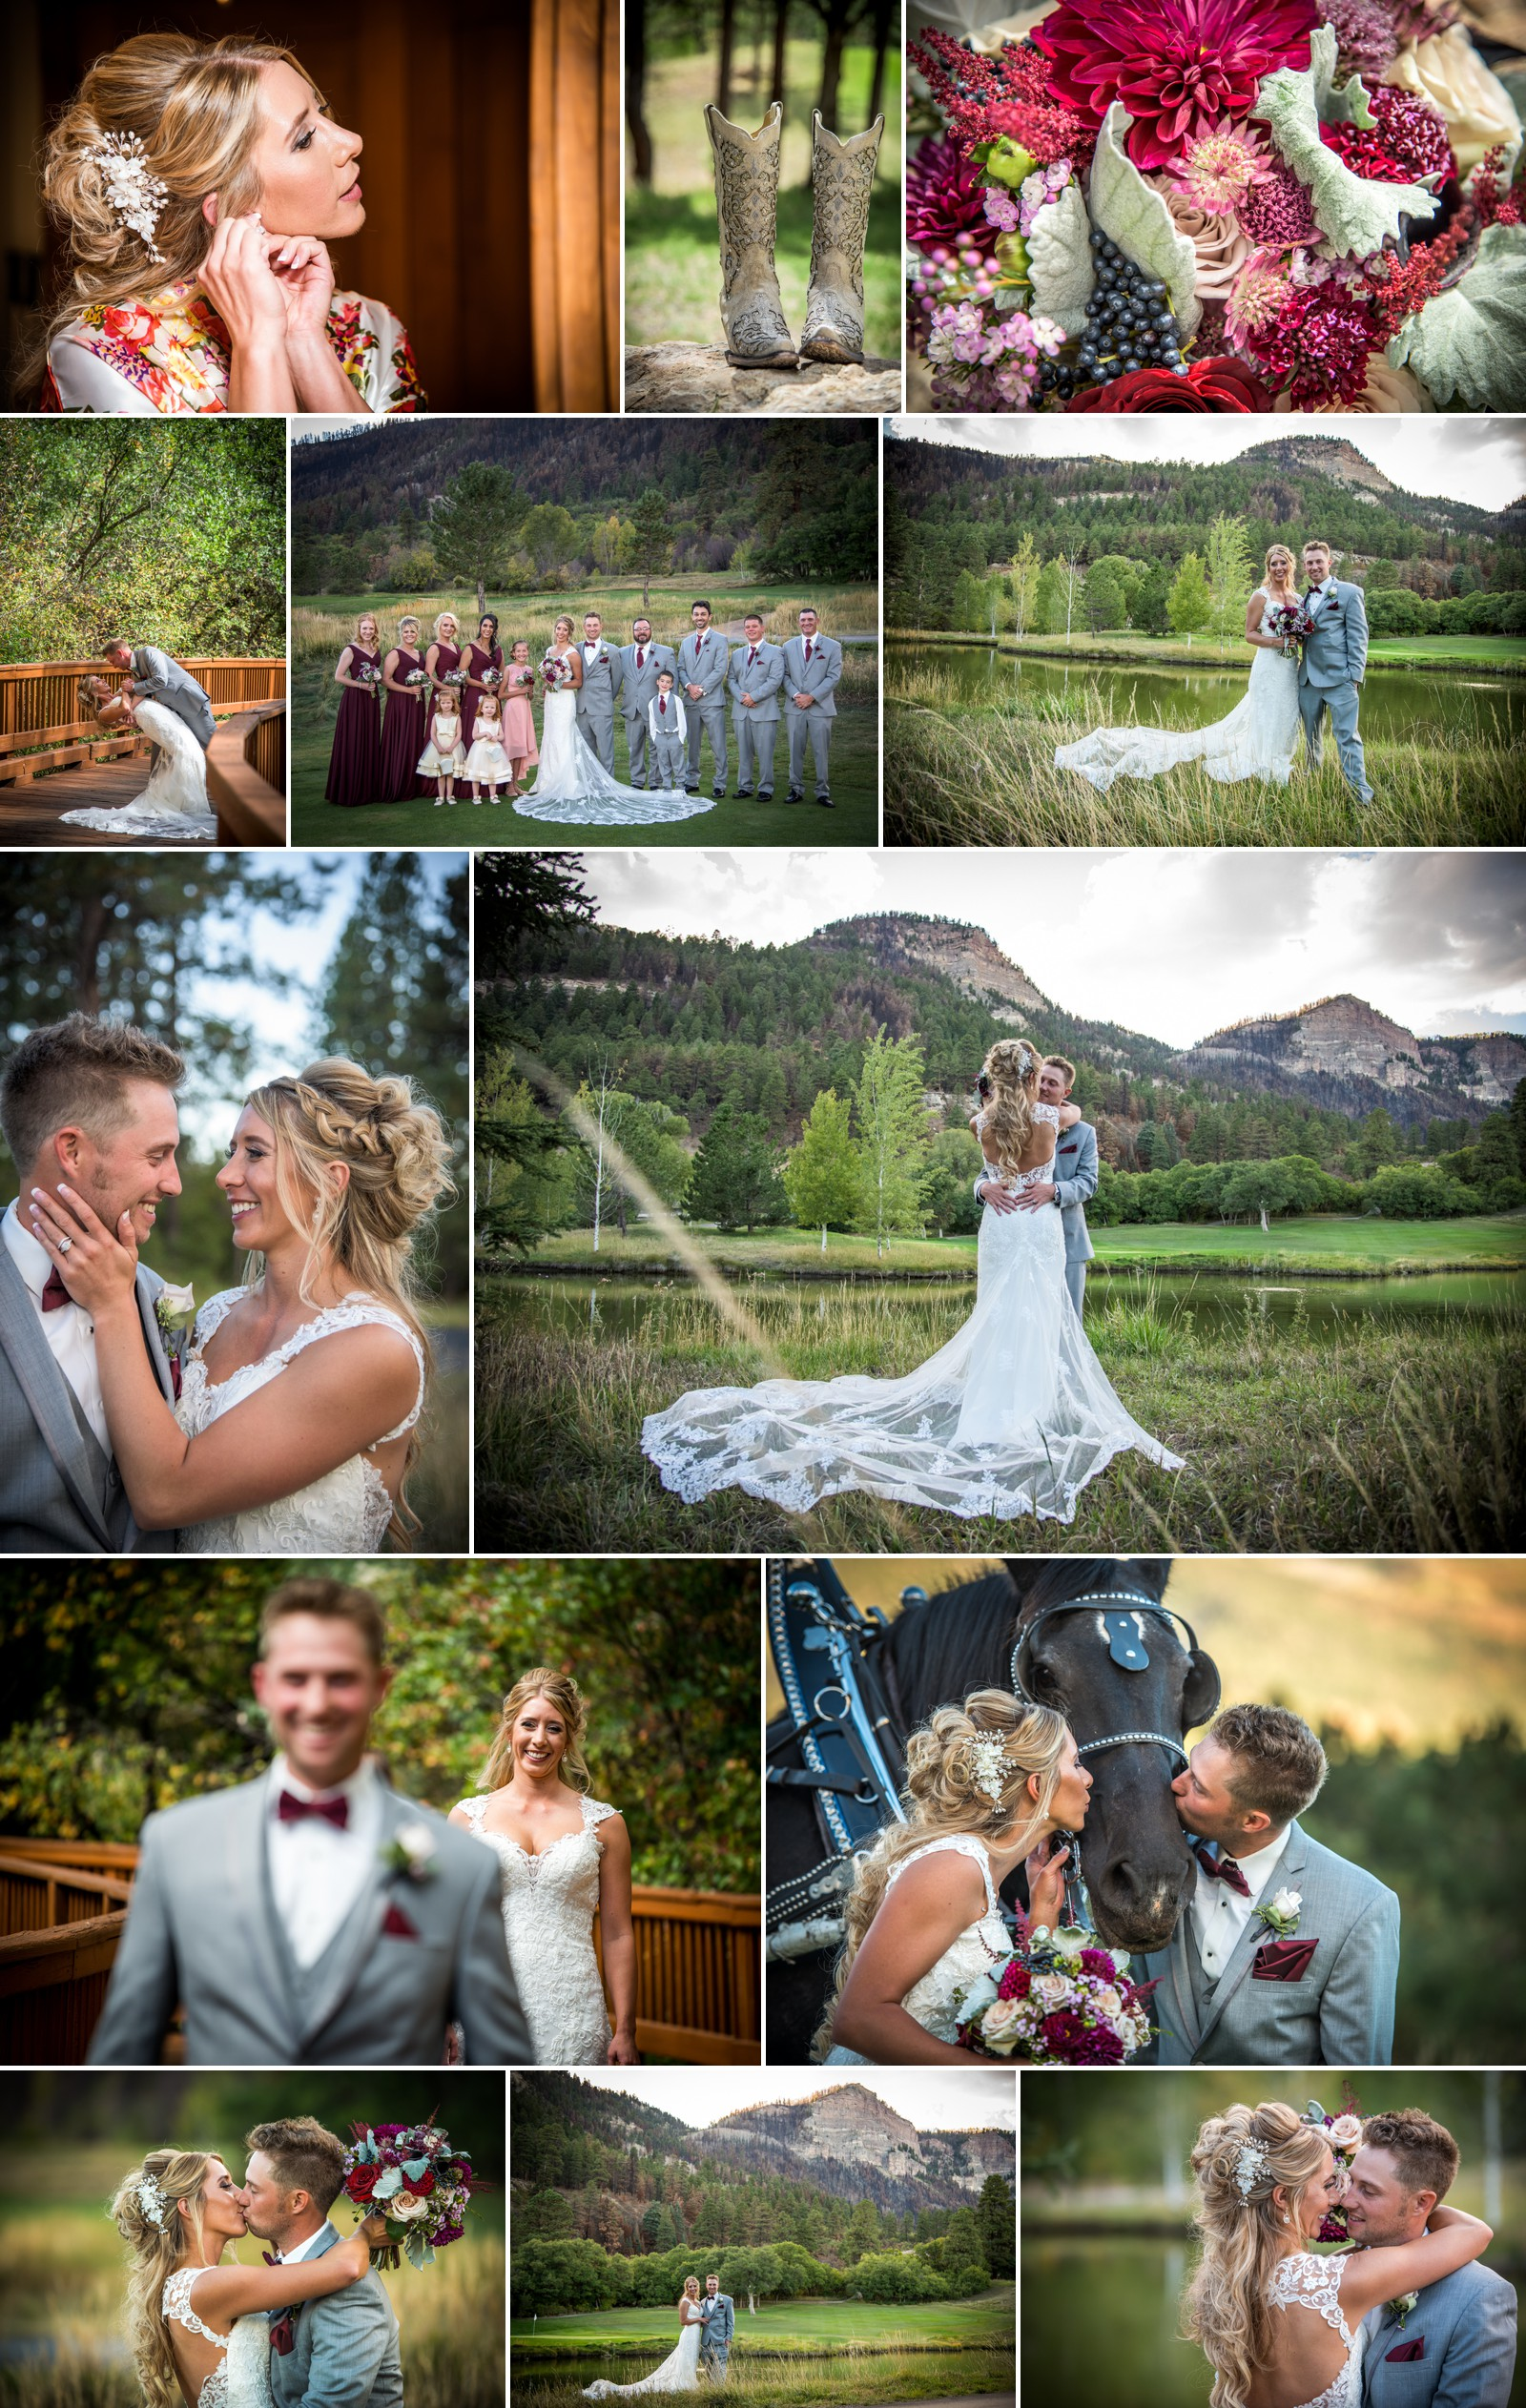 Durango Wedding Portrait Photographer